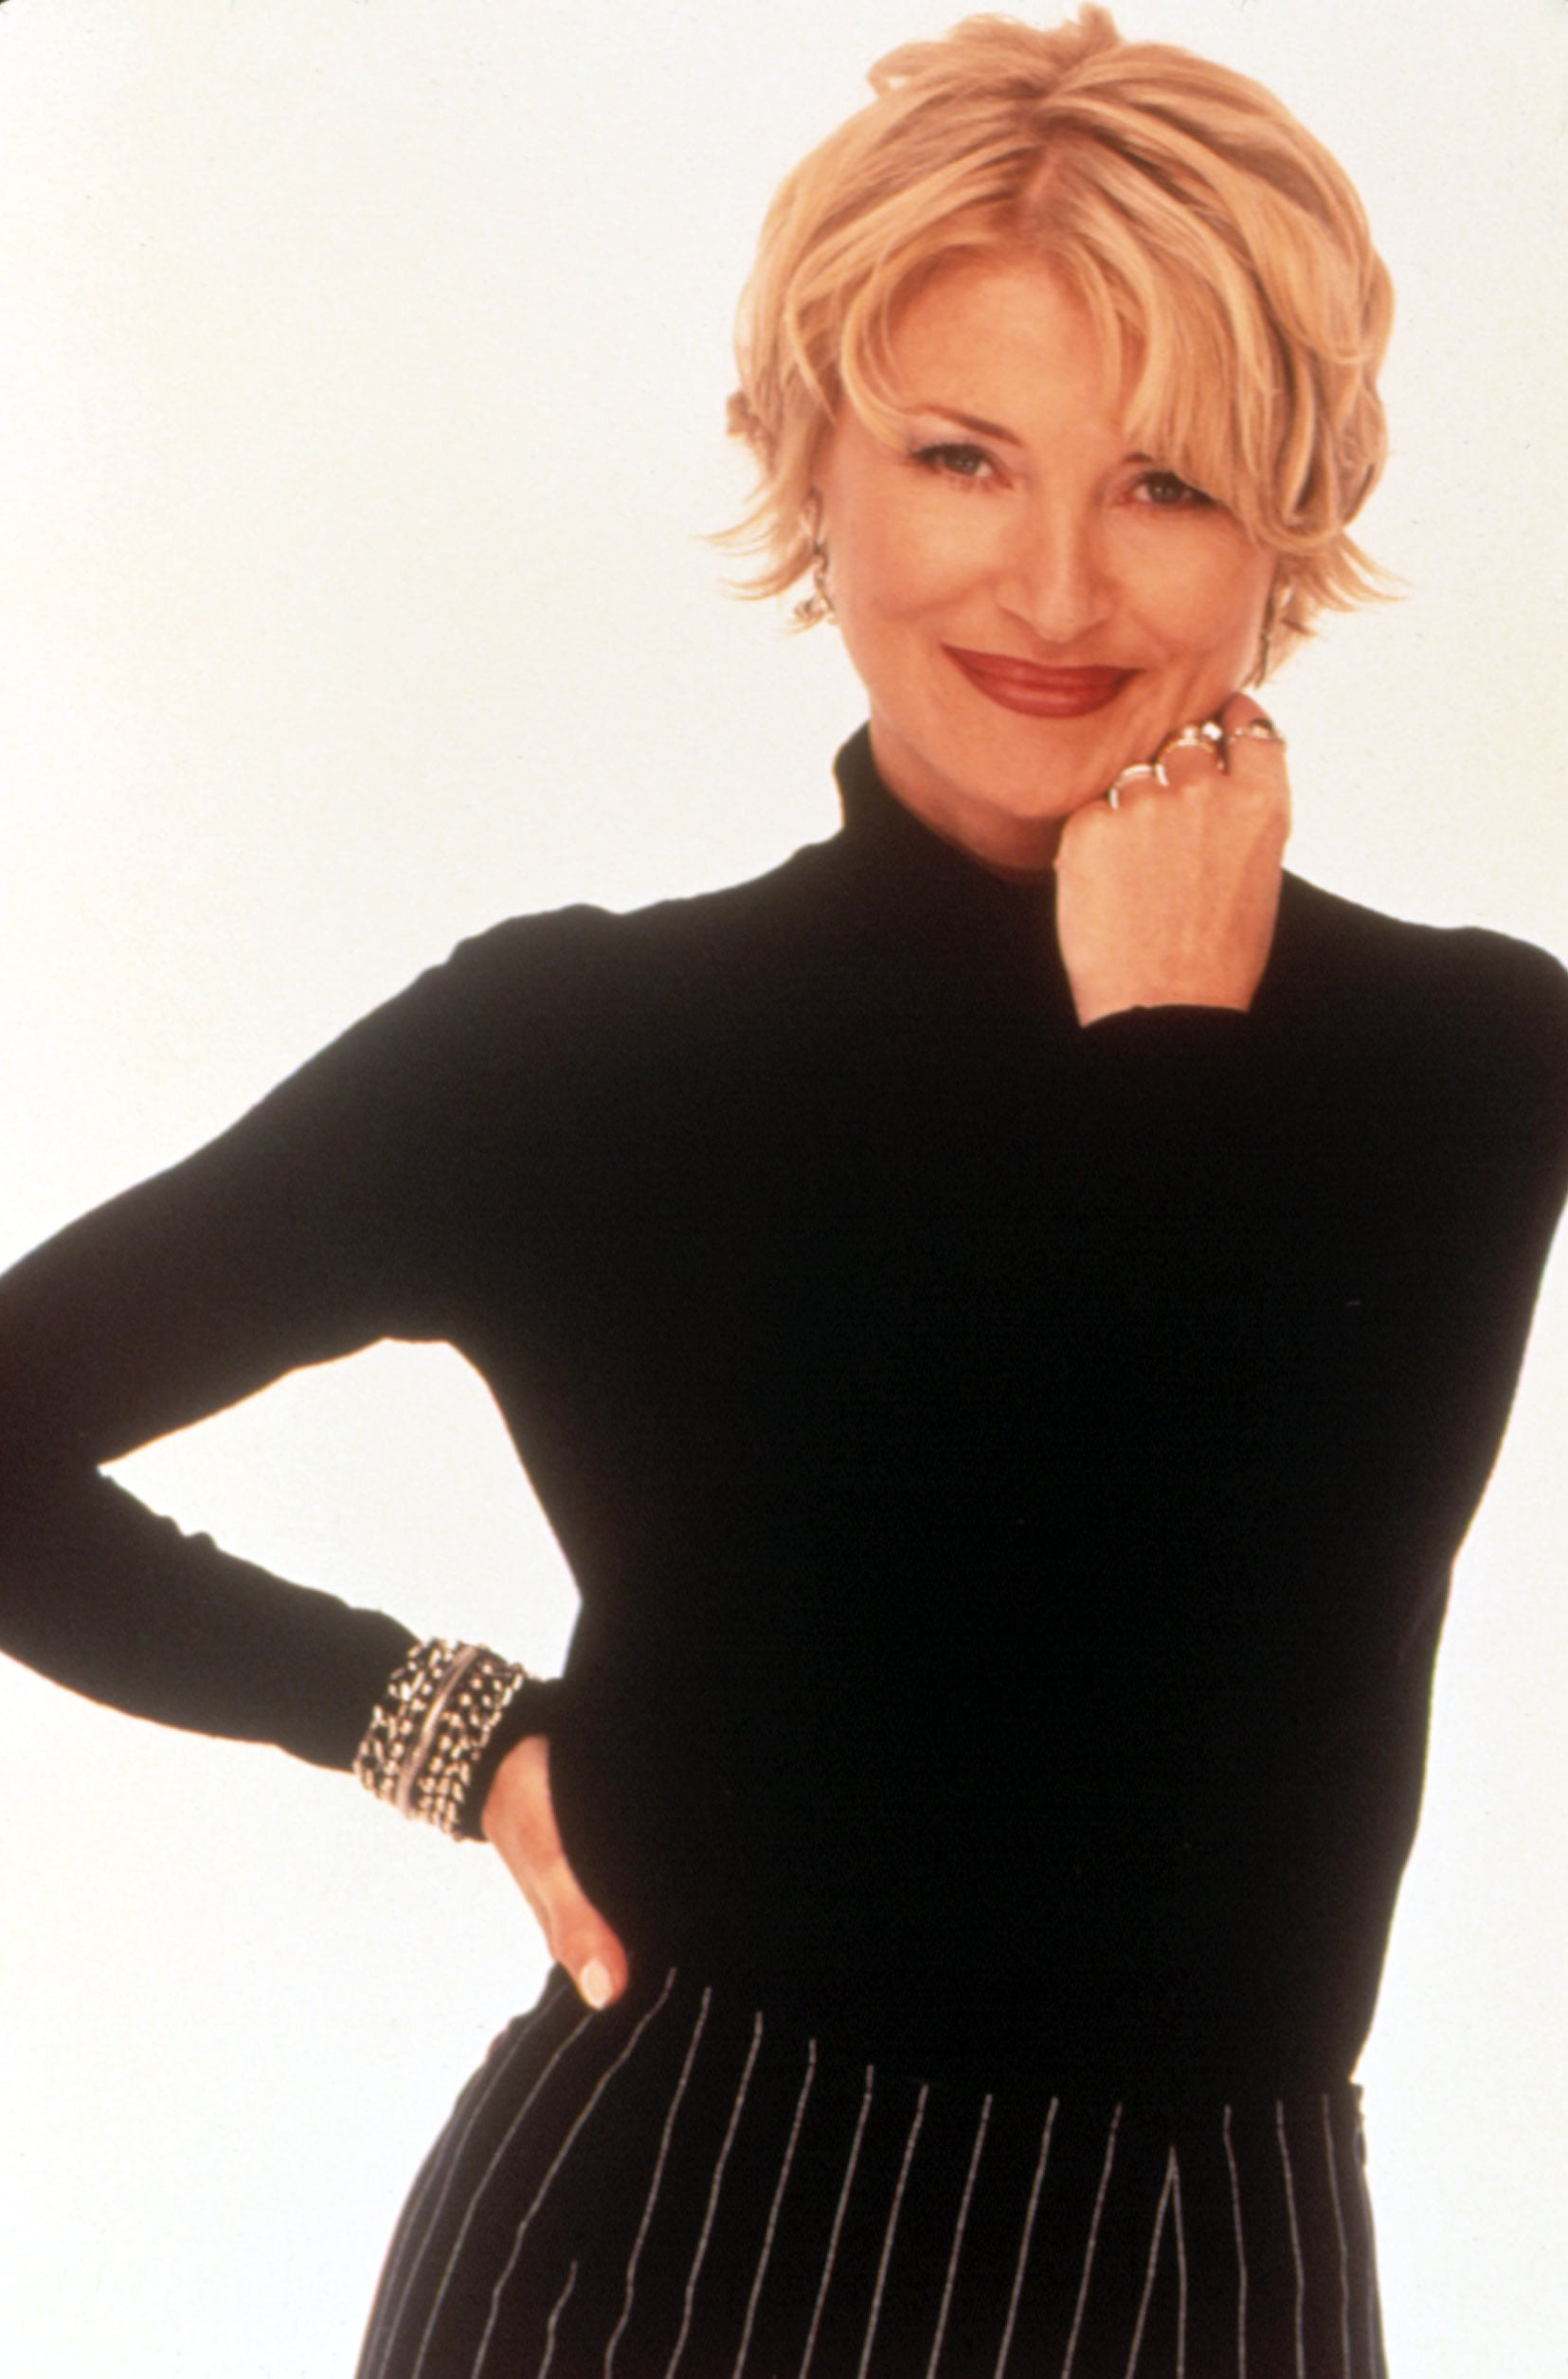 SABRINA THE TEENAGE WITCH, Beth Broderick, 1996-2003, (c)Viacom Productions Inc./courtesy Everett Collection